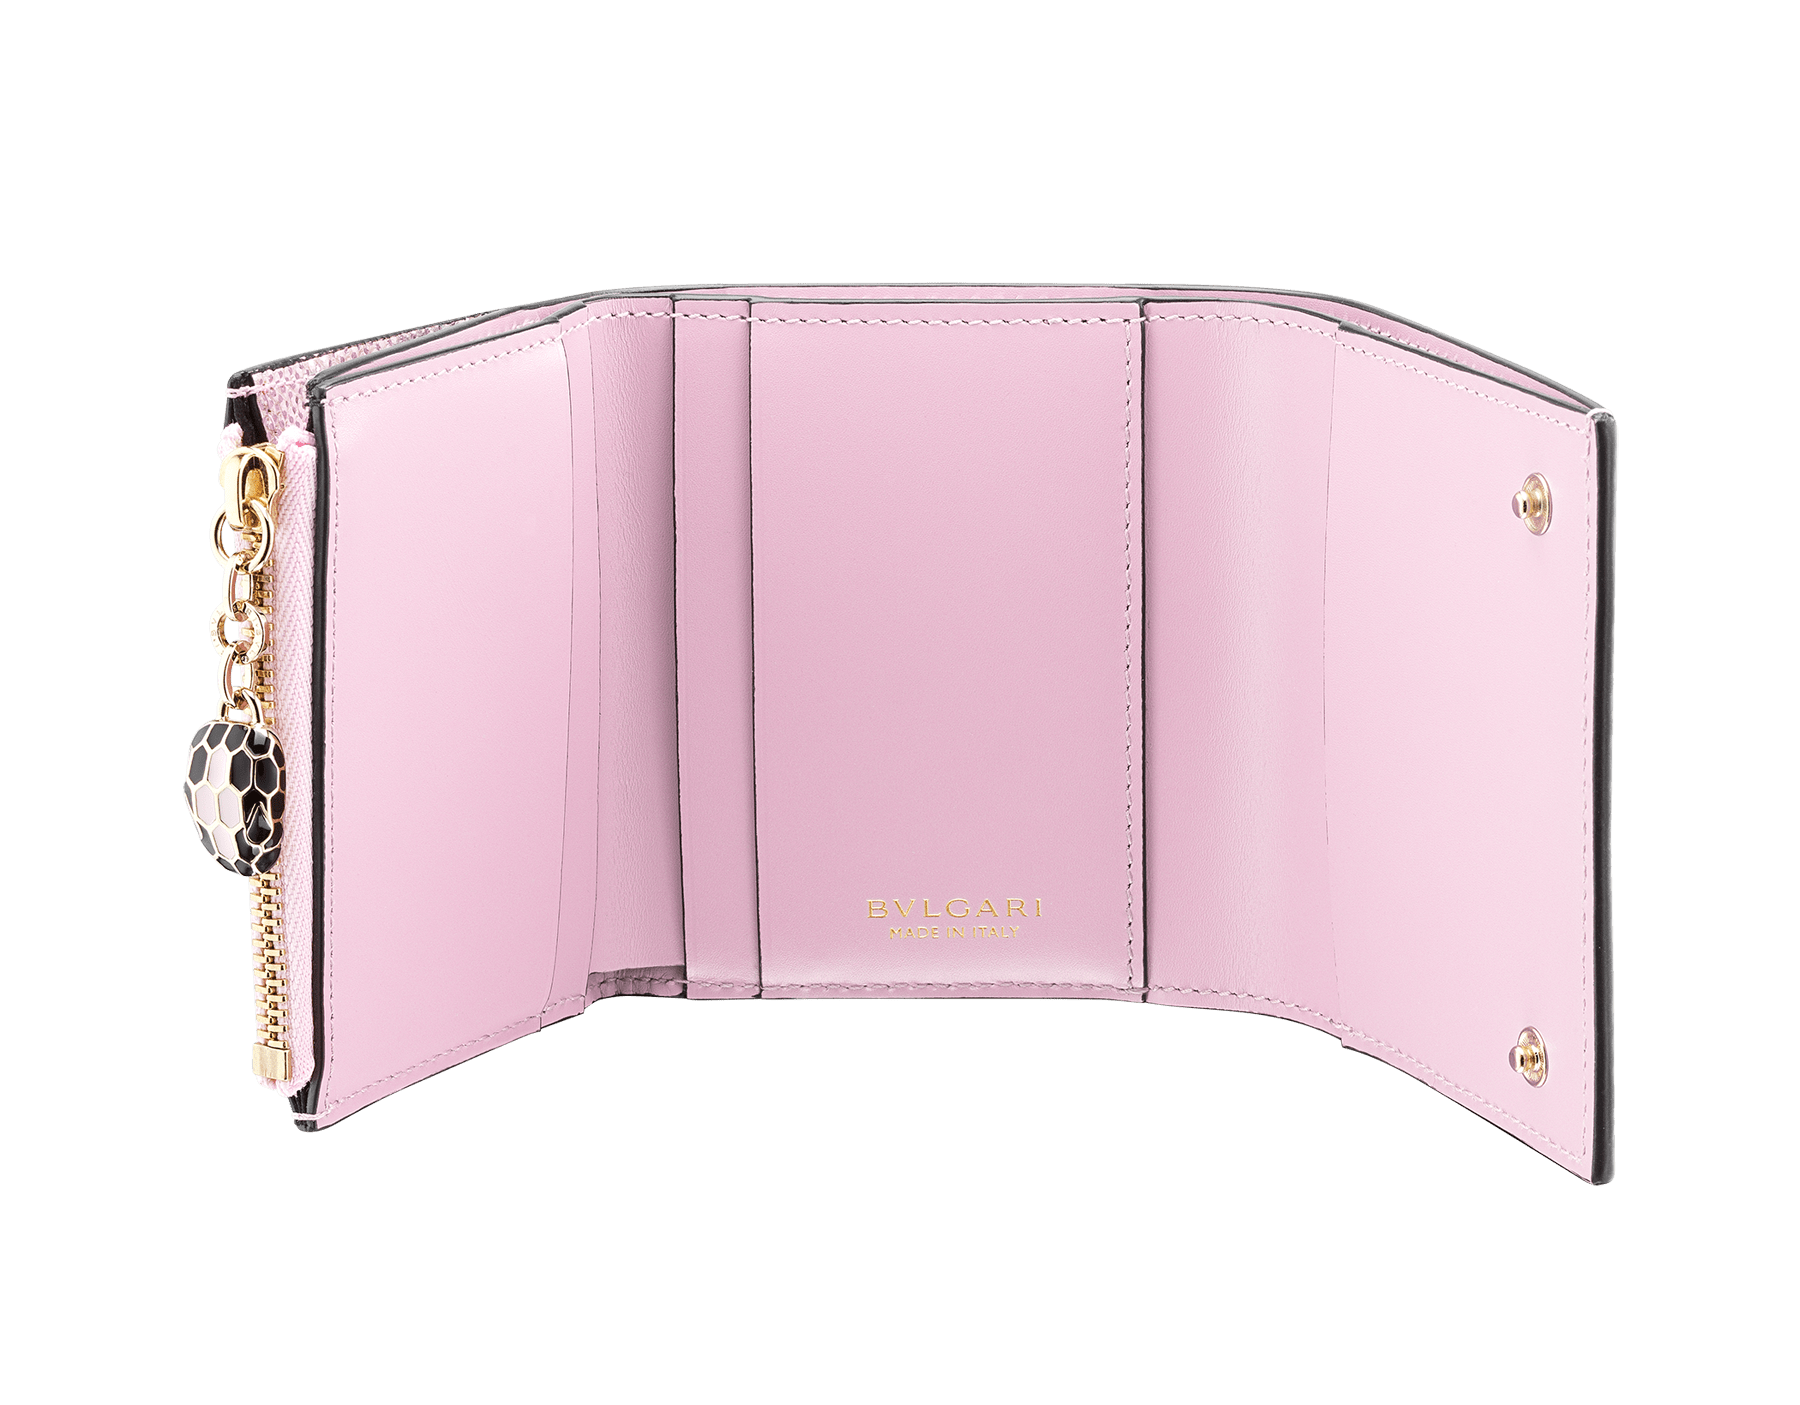 Serpenti Forever super compact wallet in rosa di francia metallic karung skin and rosa di francia calf leather. Iconic snakehead press stud closure in black and rosa di francia enamel, black enamel eyes. 289080 image 2